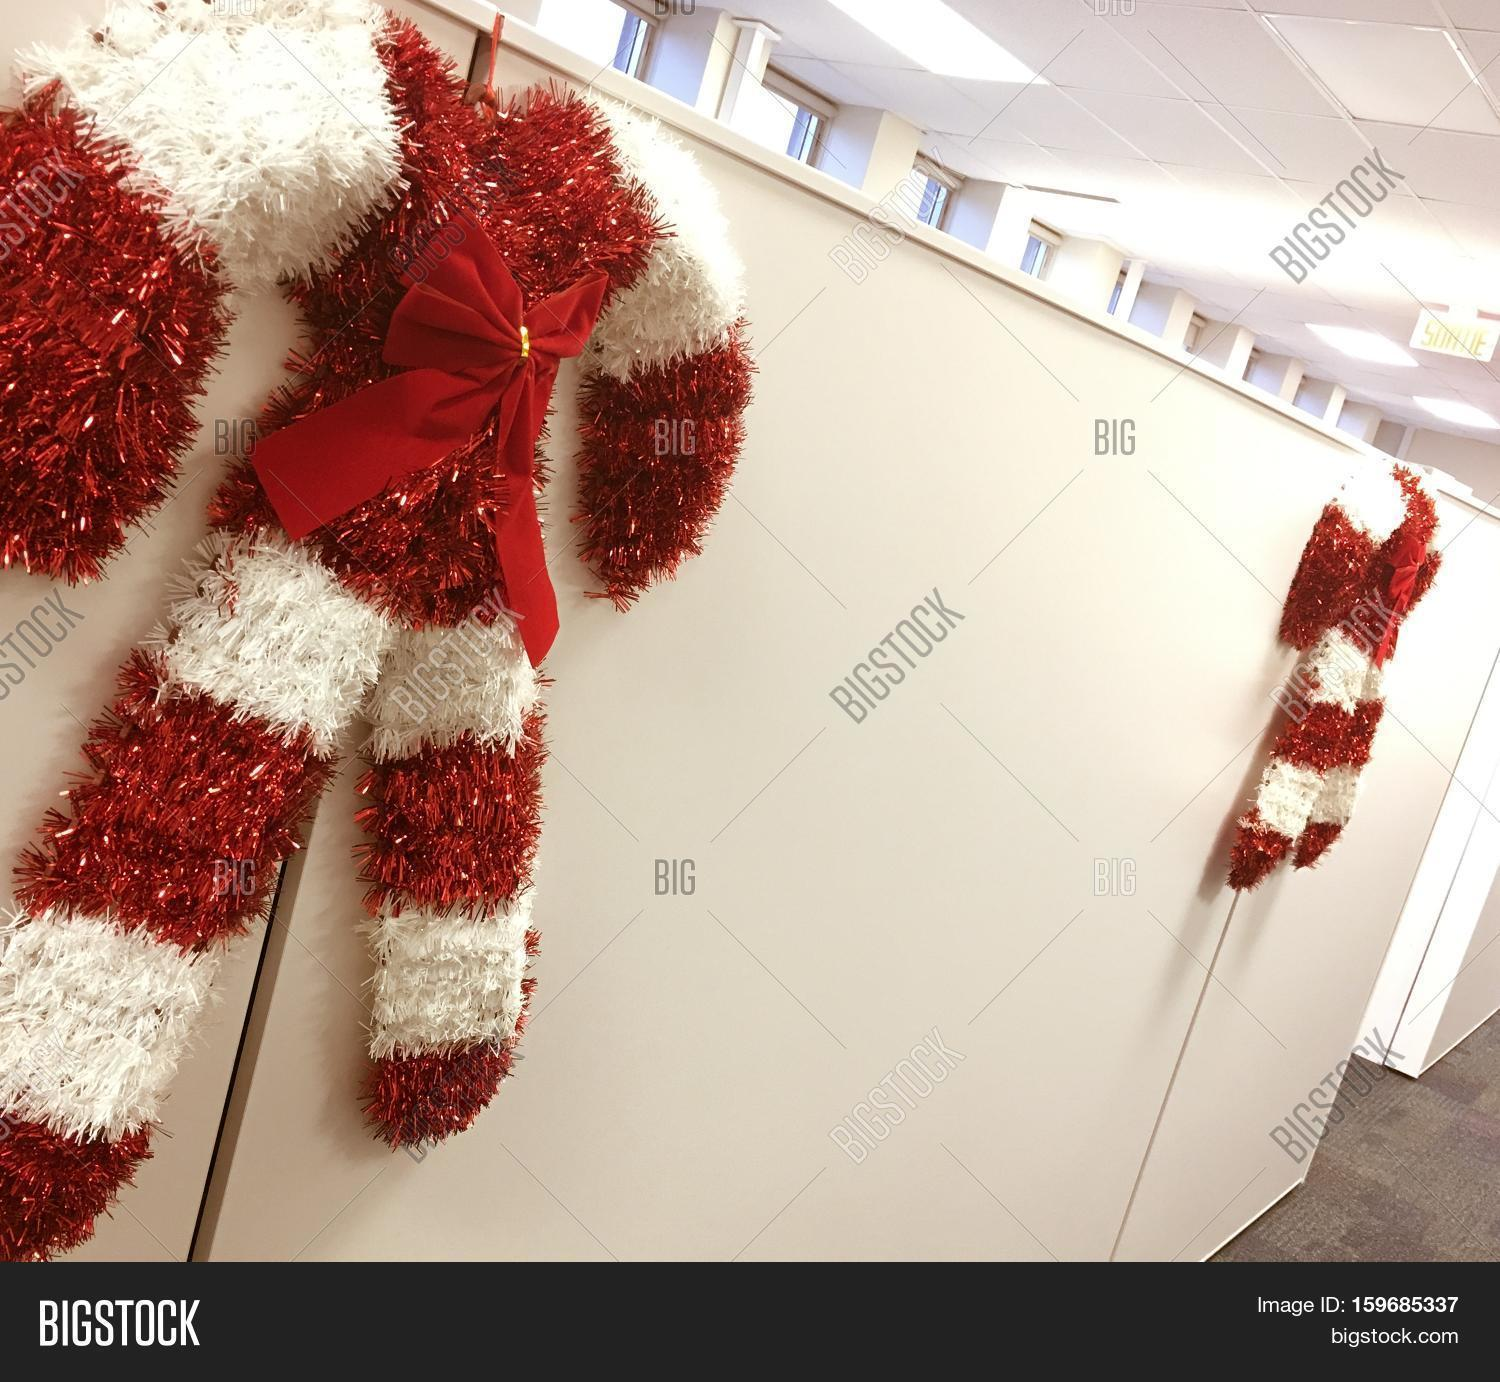 Christmas Office Image Photo Free Trial Bigstock